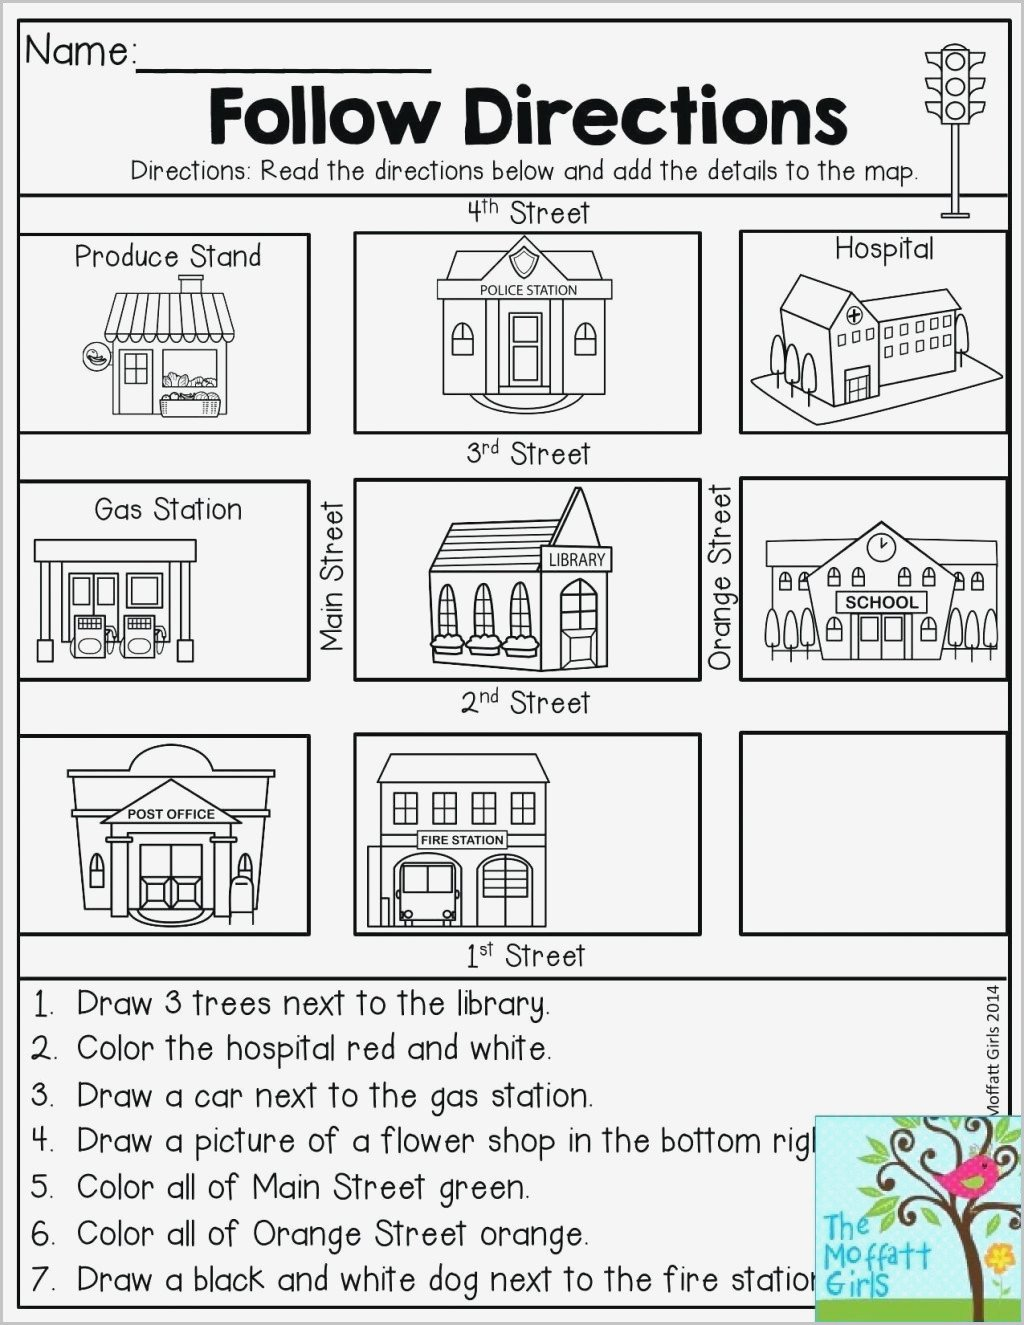 Intermediate Directions Worksheet Free Printable Cardinal Directions Worksheets